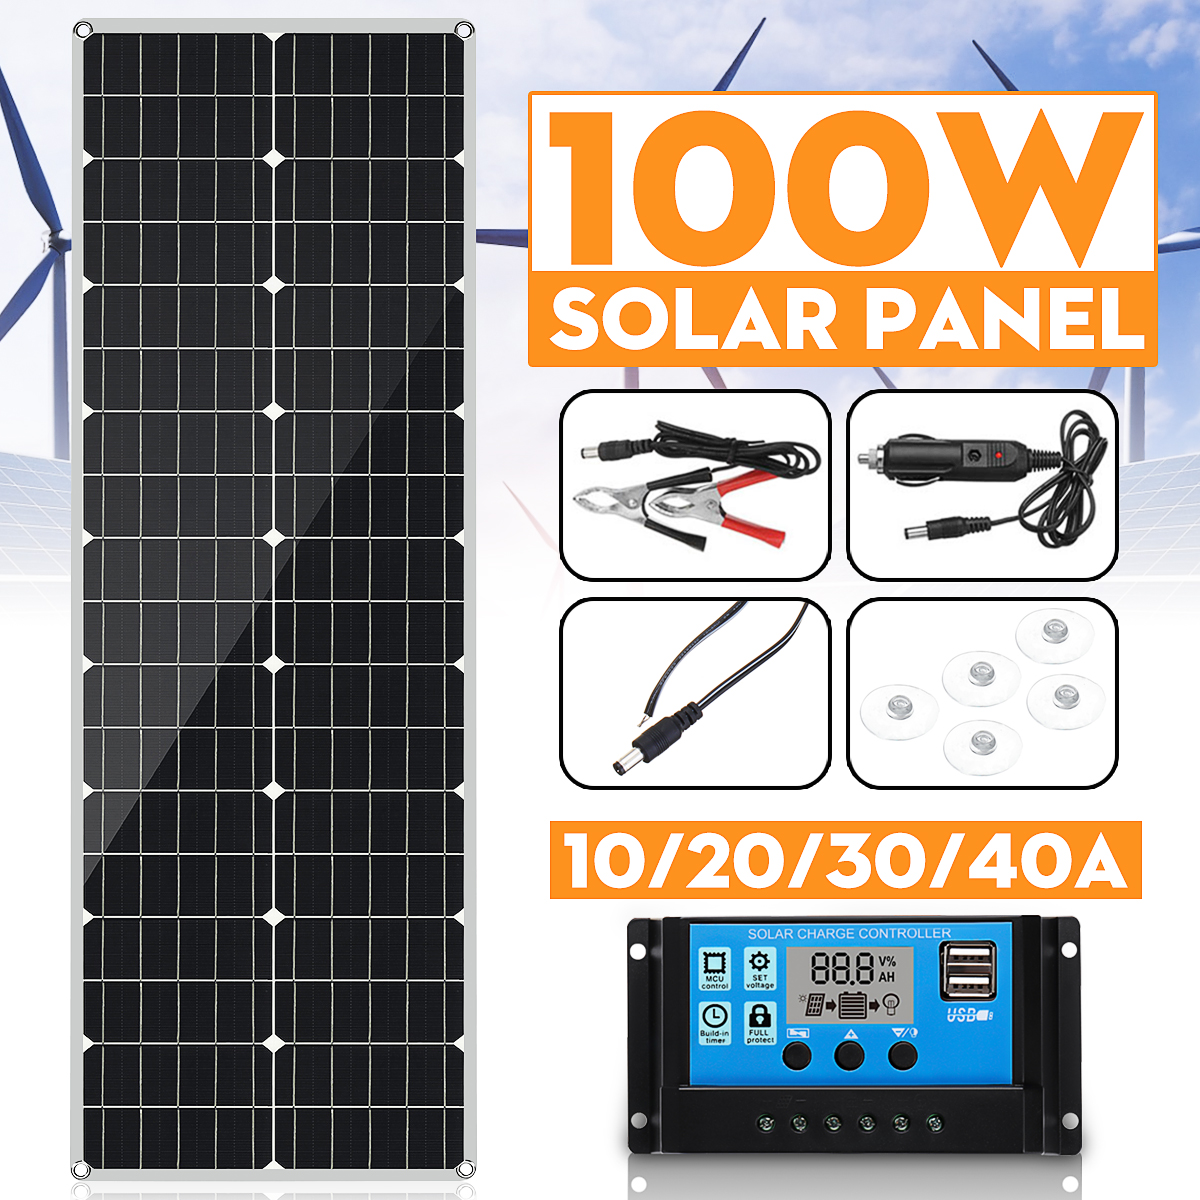 KINCO100W Solar Panel 18V Flexible MonoCrystalline Silicon Solar Panel for Outdoor Cycling Climbing Hiking Camping Solar Battery